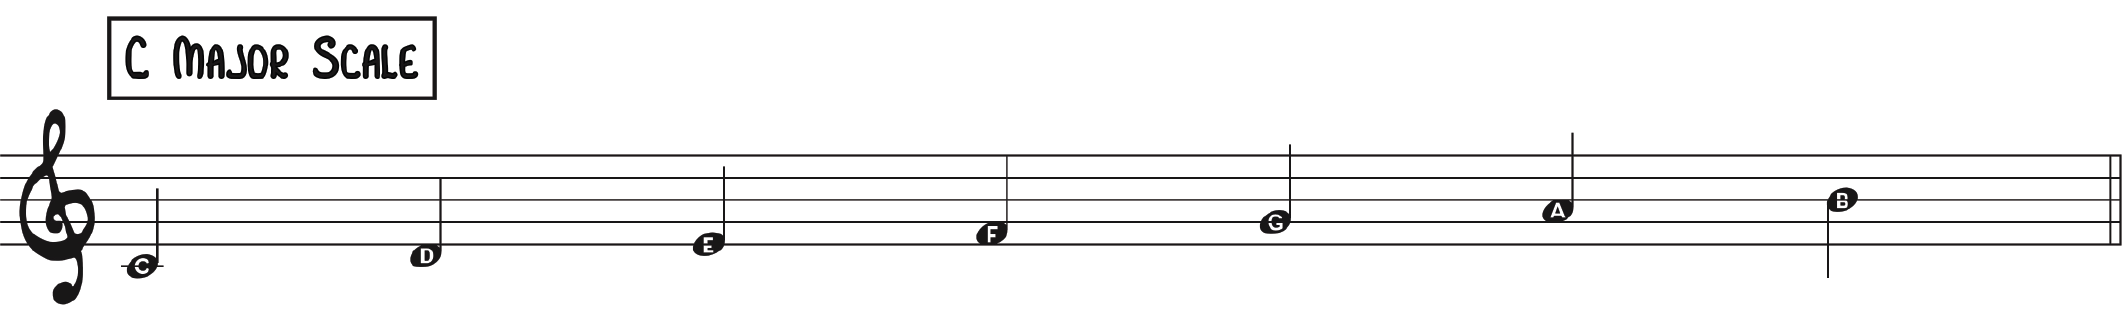 C Major Color Palette right hand scale for improv soloing